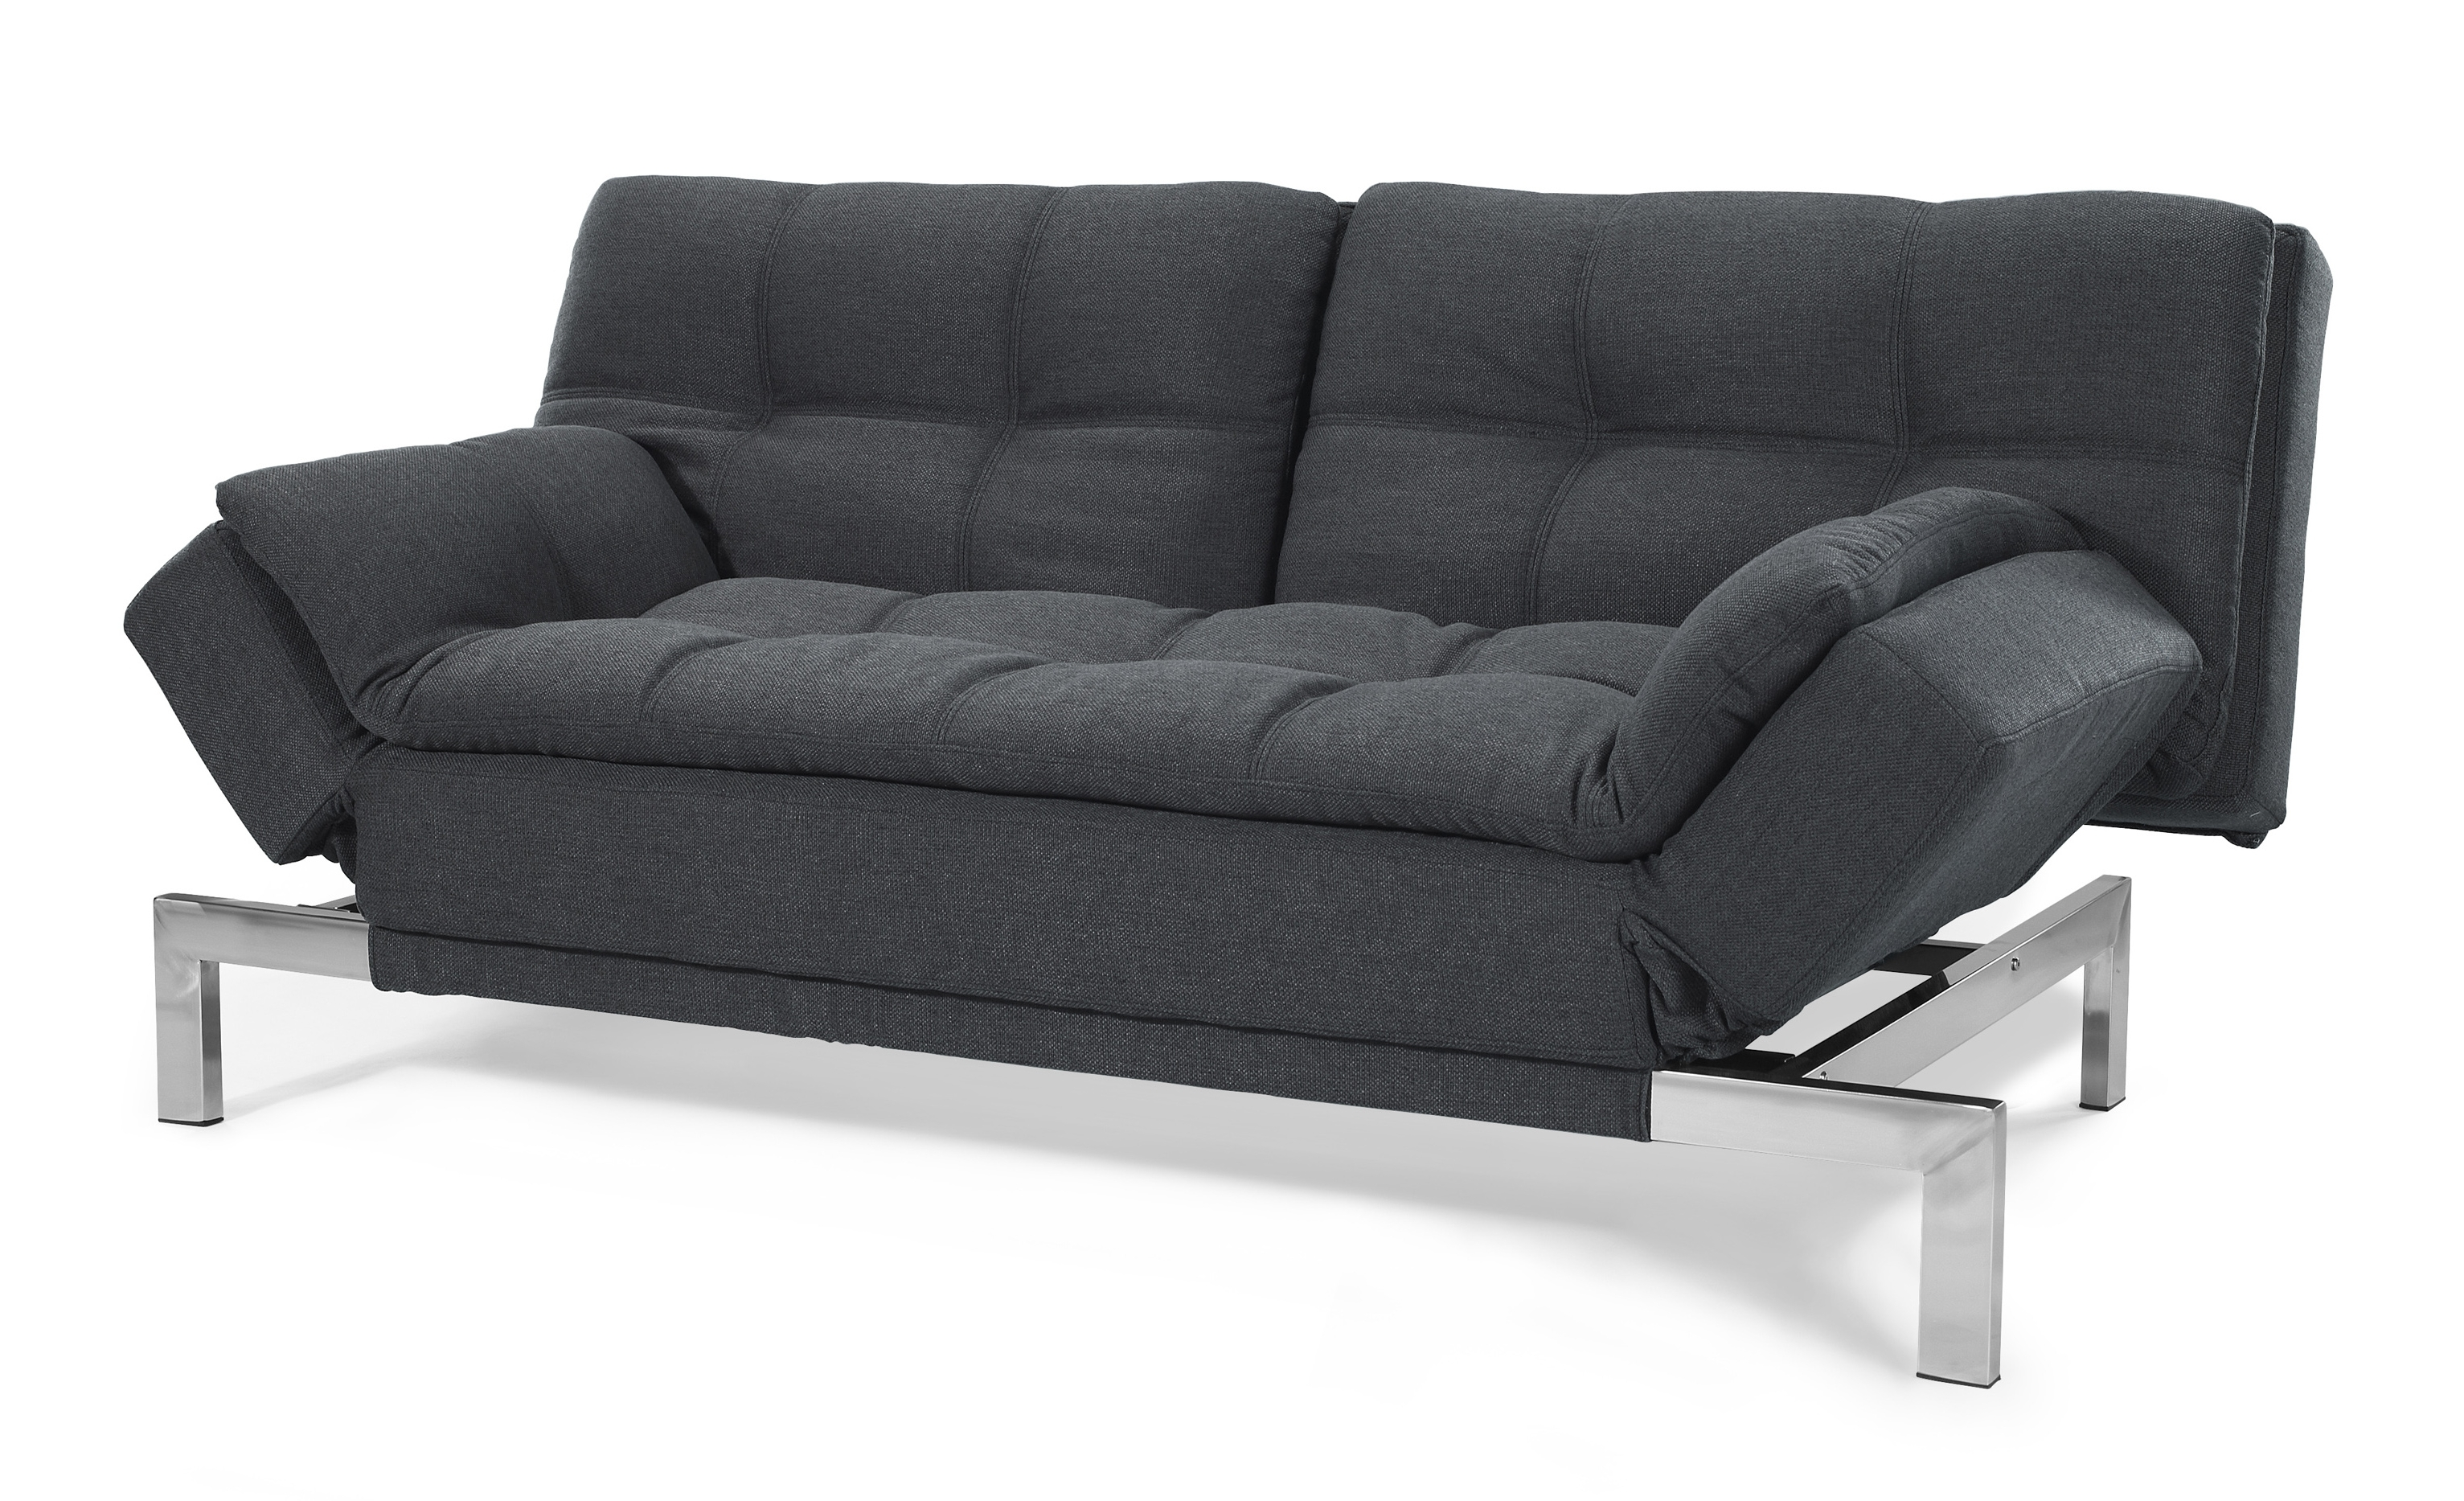 Convertible Sofas For Widely Used Lifestyle Solutions Boca Serta Convertible Sofa Sabocs3U4Cc (View 5 of 20)